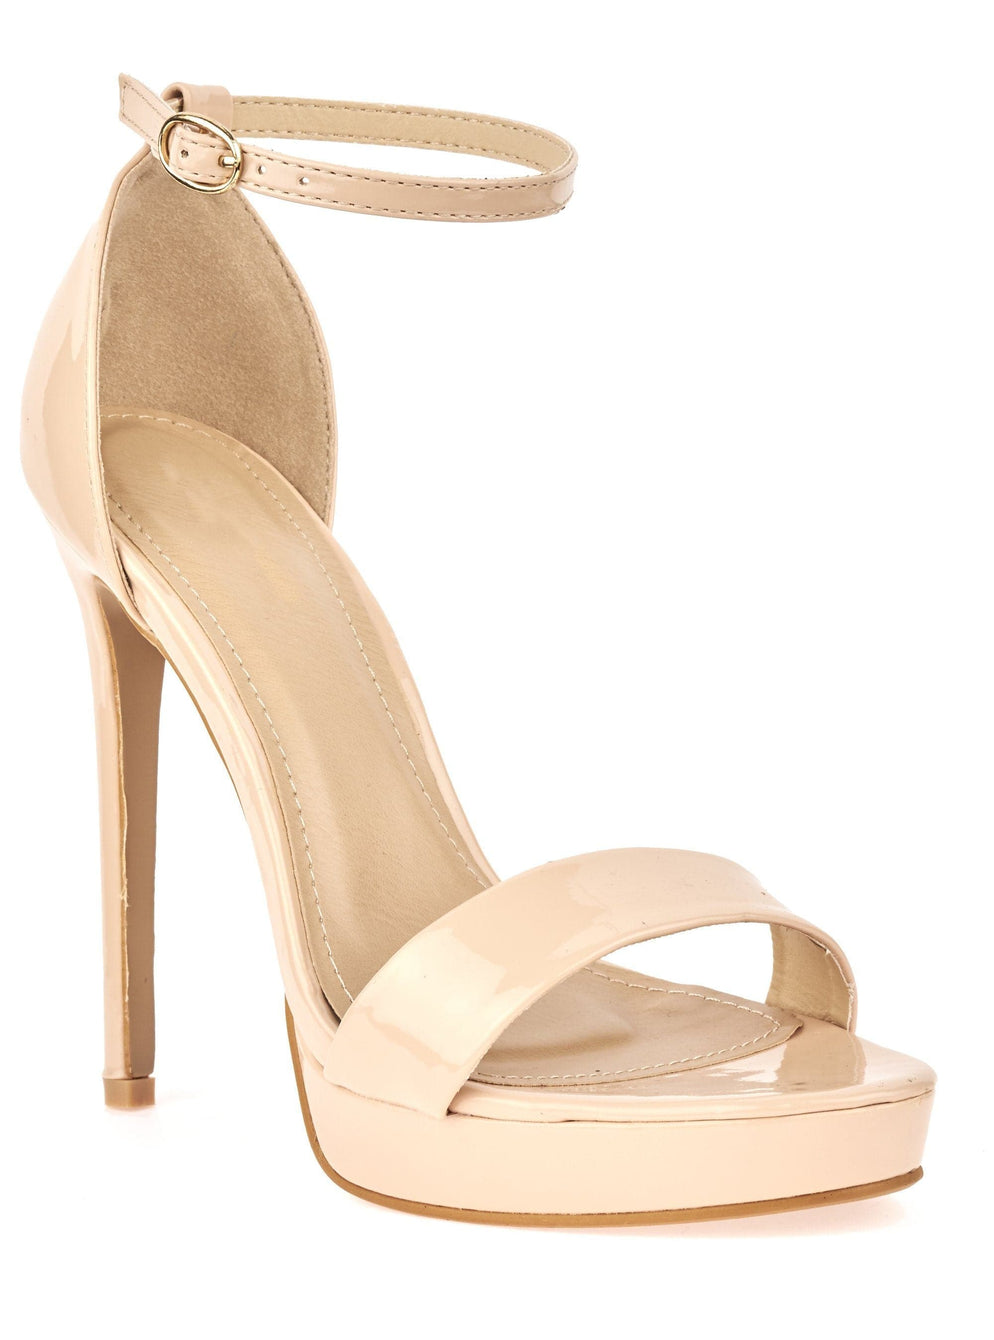 Ella Barely There Platform Sandal in Nude Patent